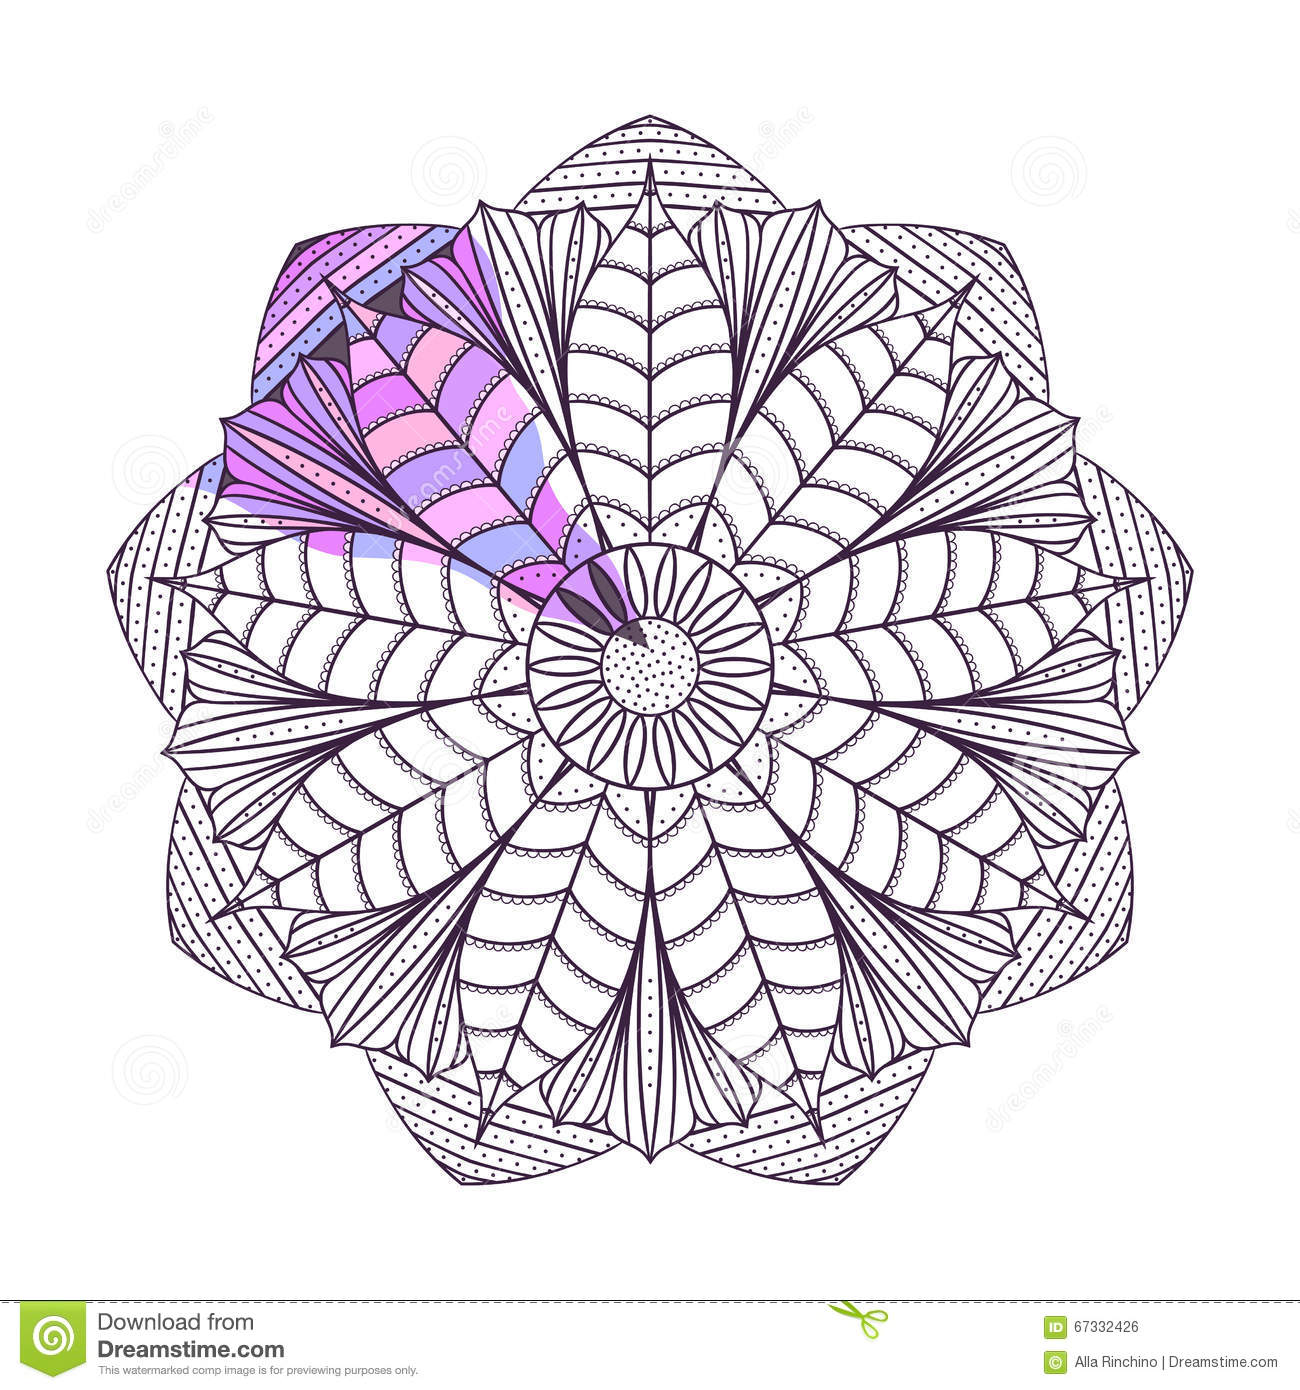 Coloring Page With Mandala2 Stock Vector Illustration Of Hand